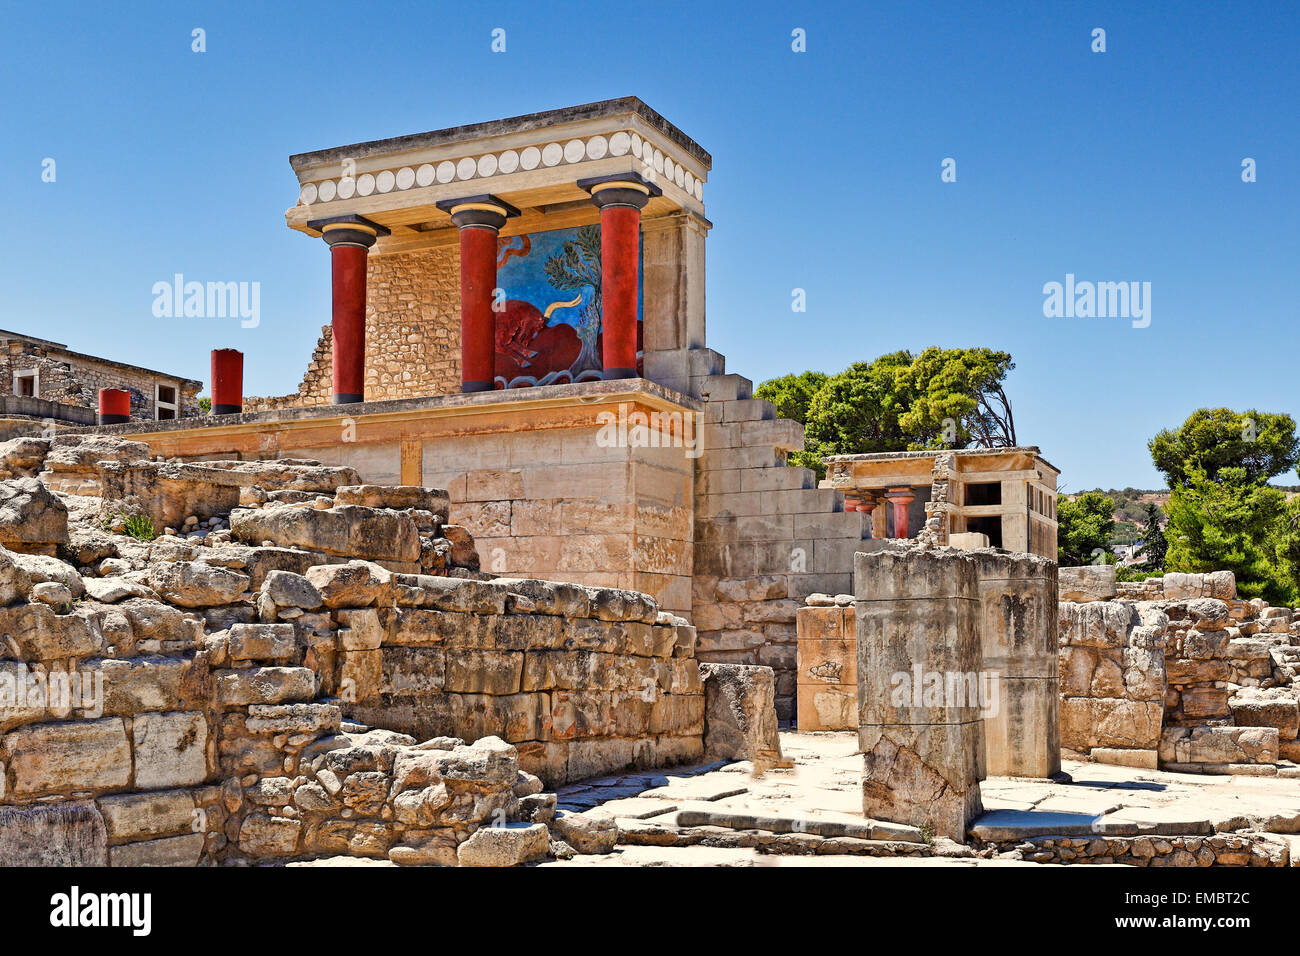 The North Entrance of the Palace with charging bull fresco in Knossos at Crete, Greece - Stock Image